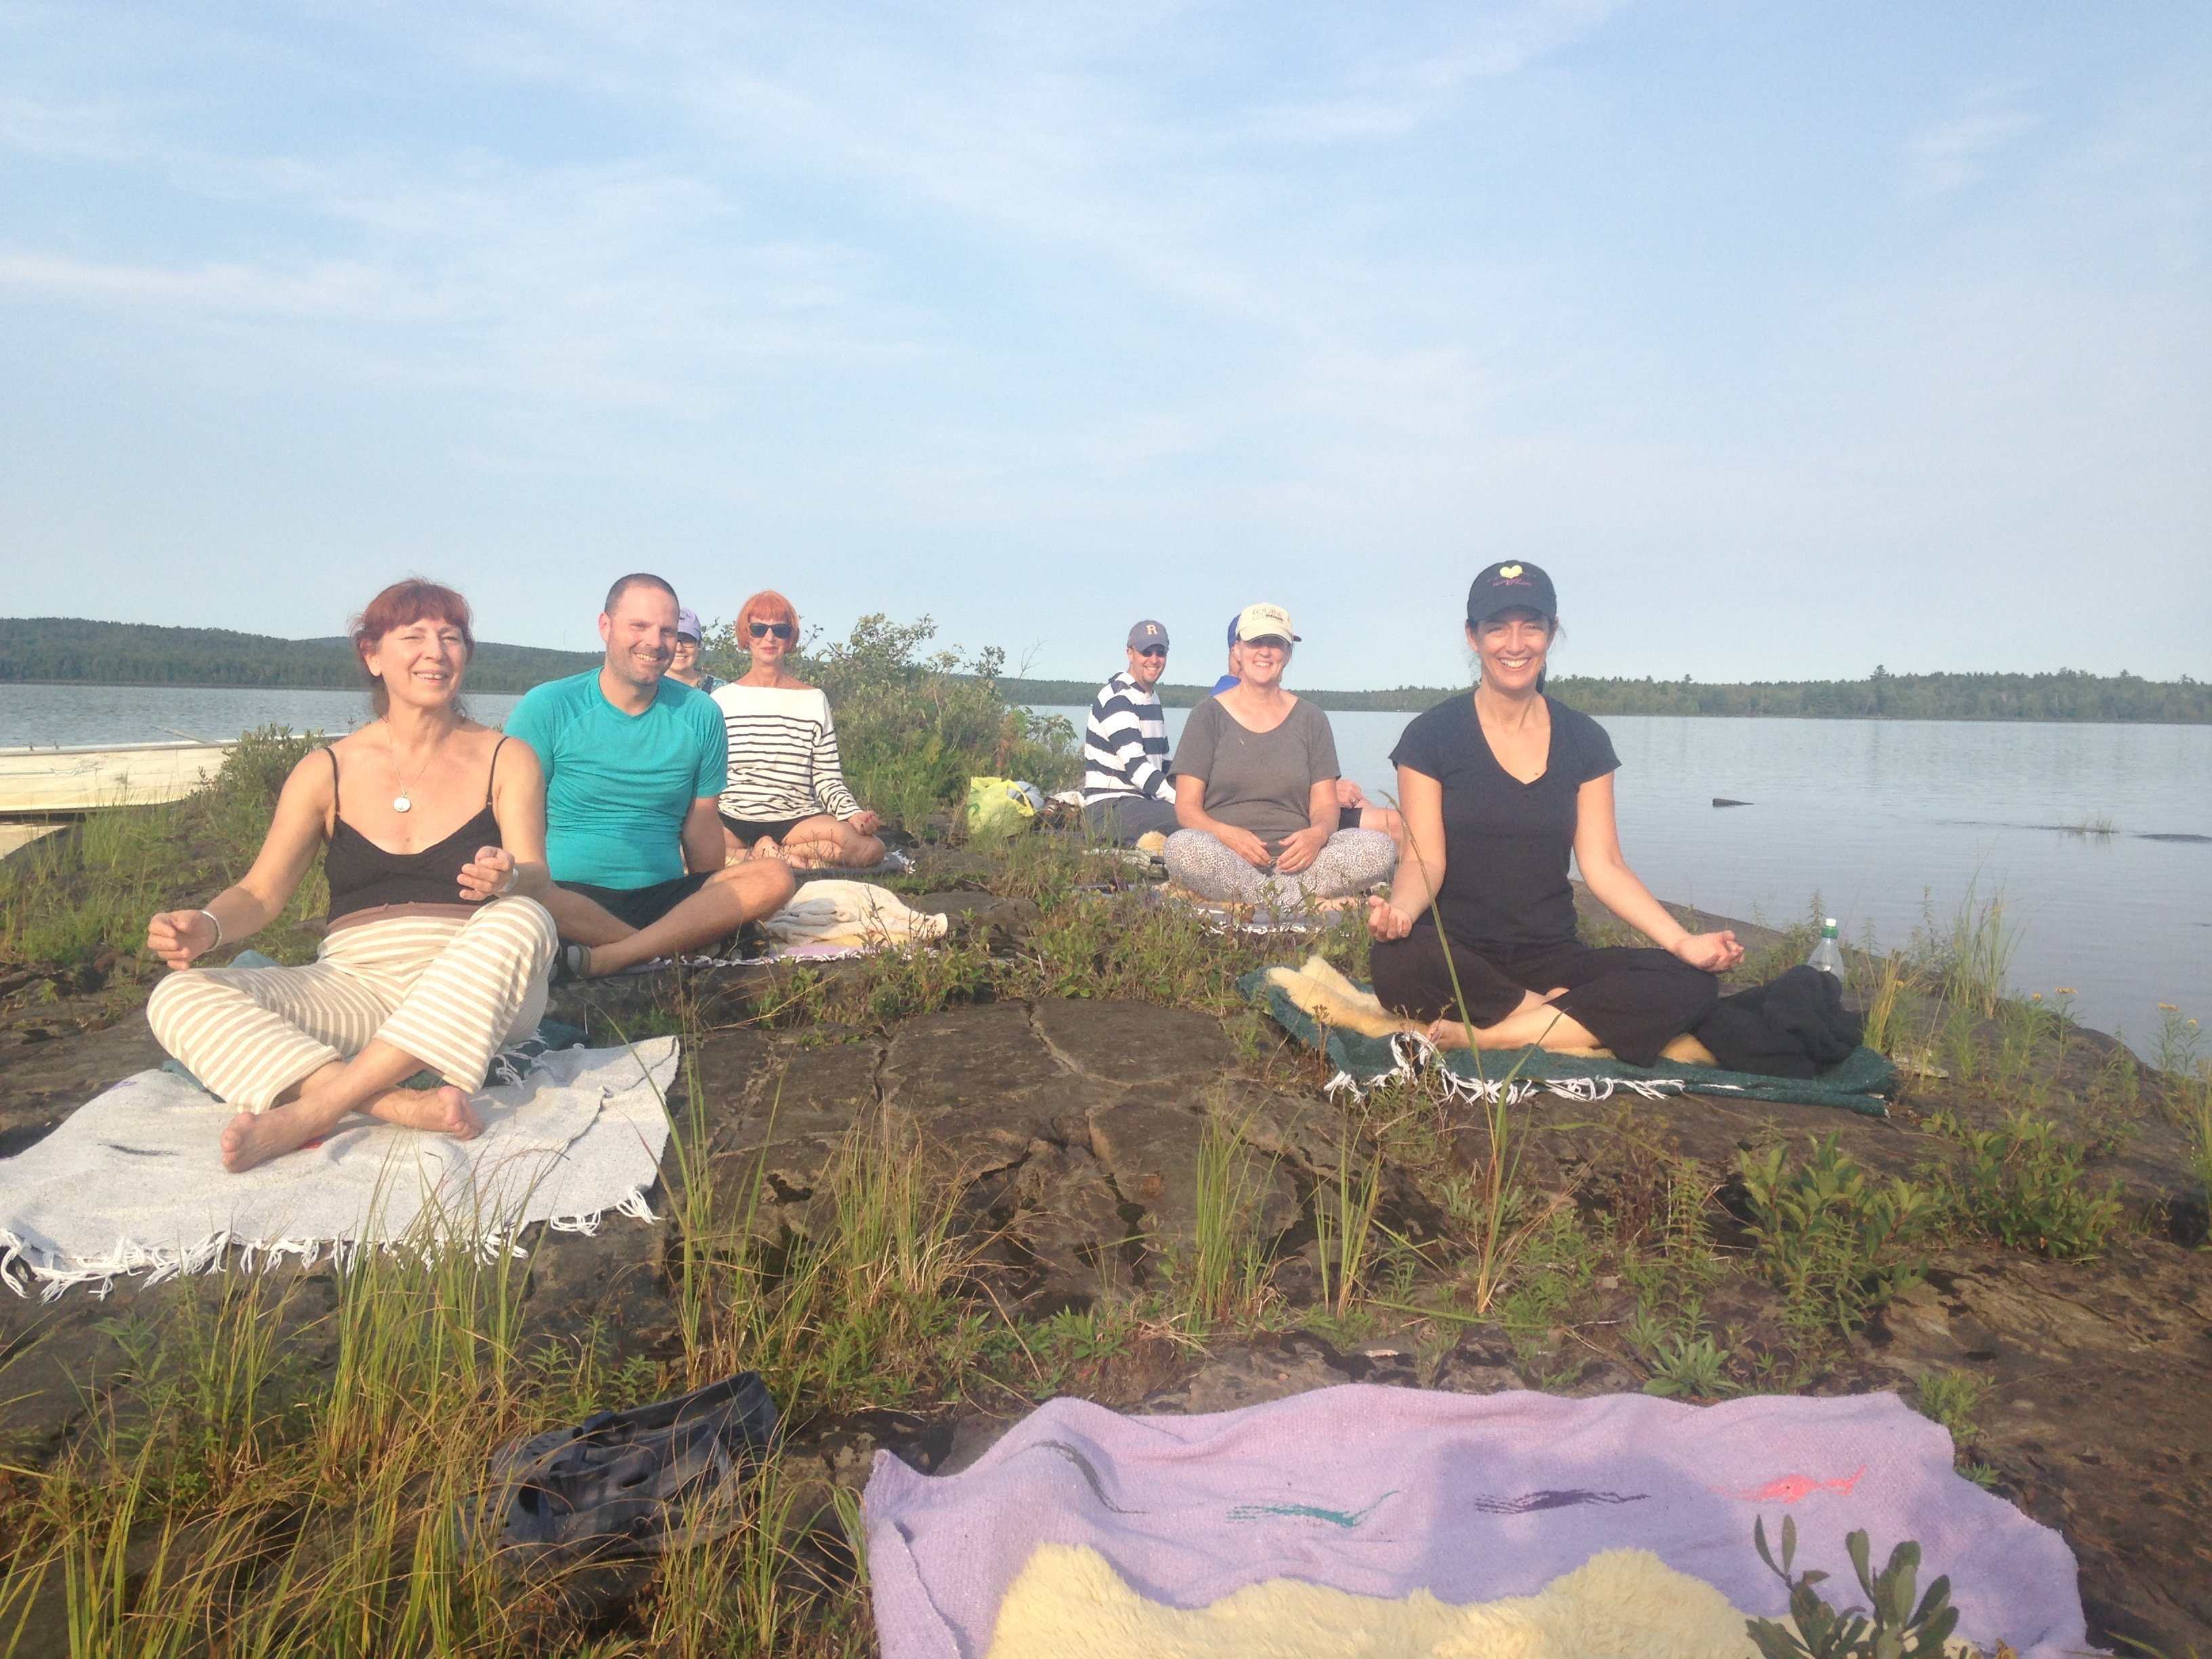 yoga on Loon Ledge in the middle of the lake 5 miles away from civilization- fun outings for yoga, meditation and swimming too!